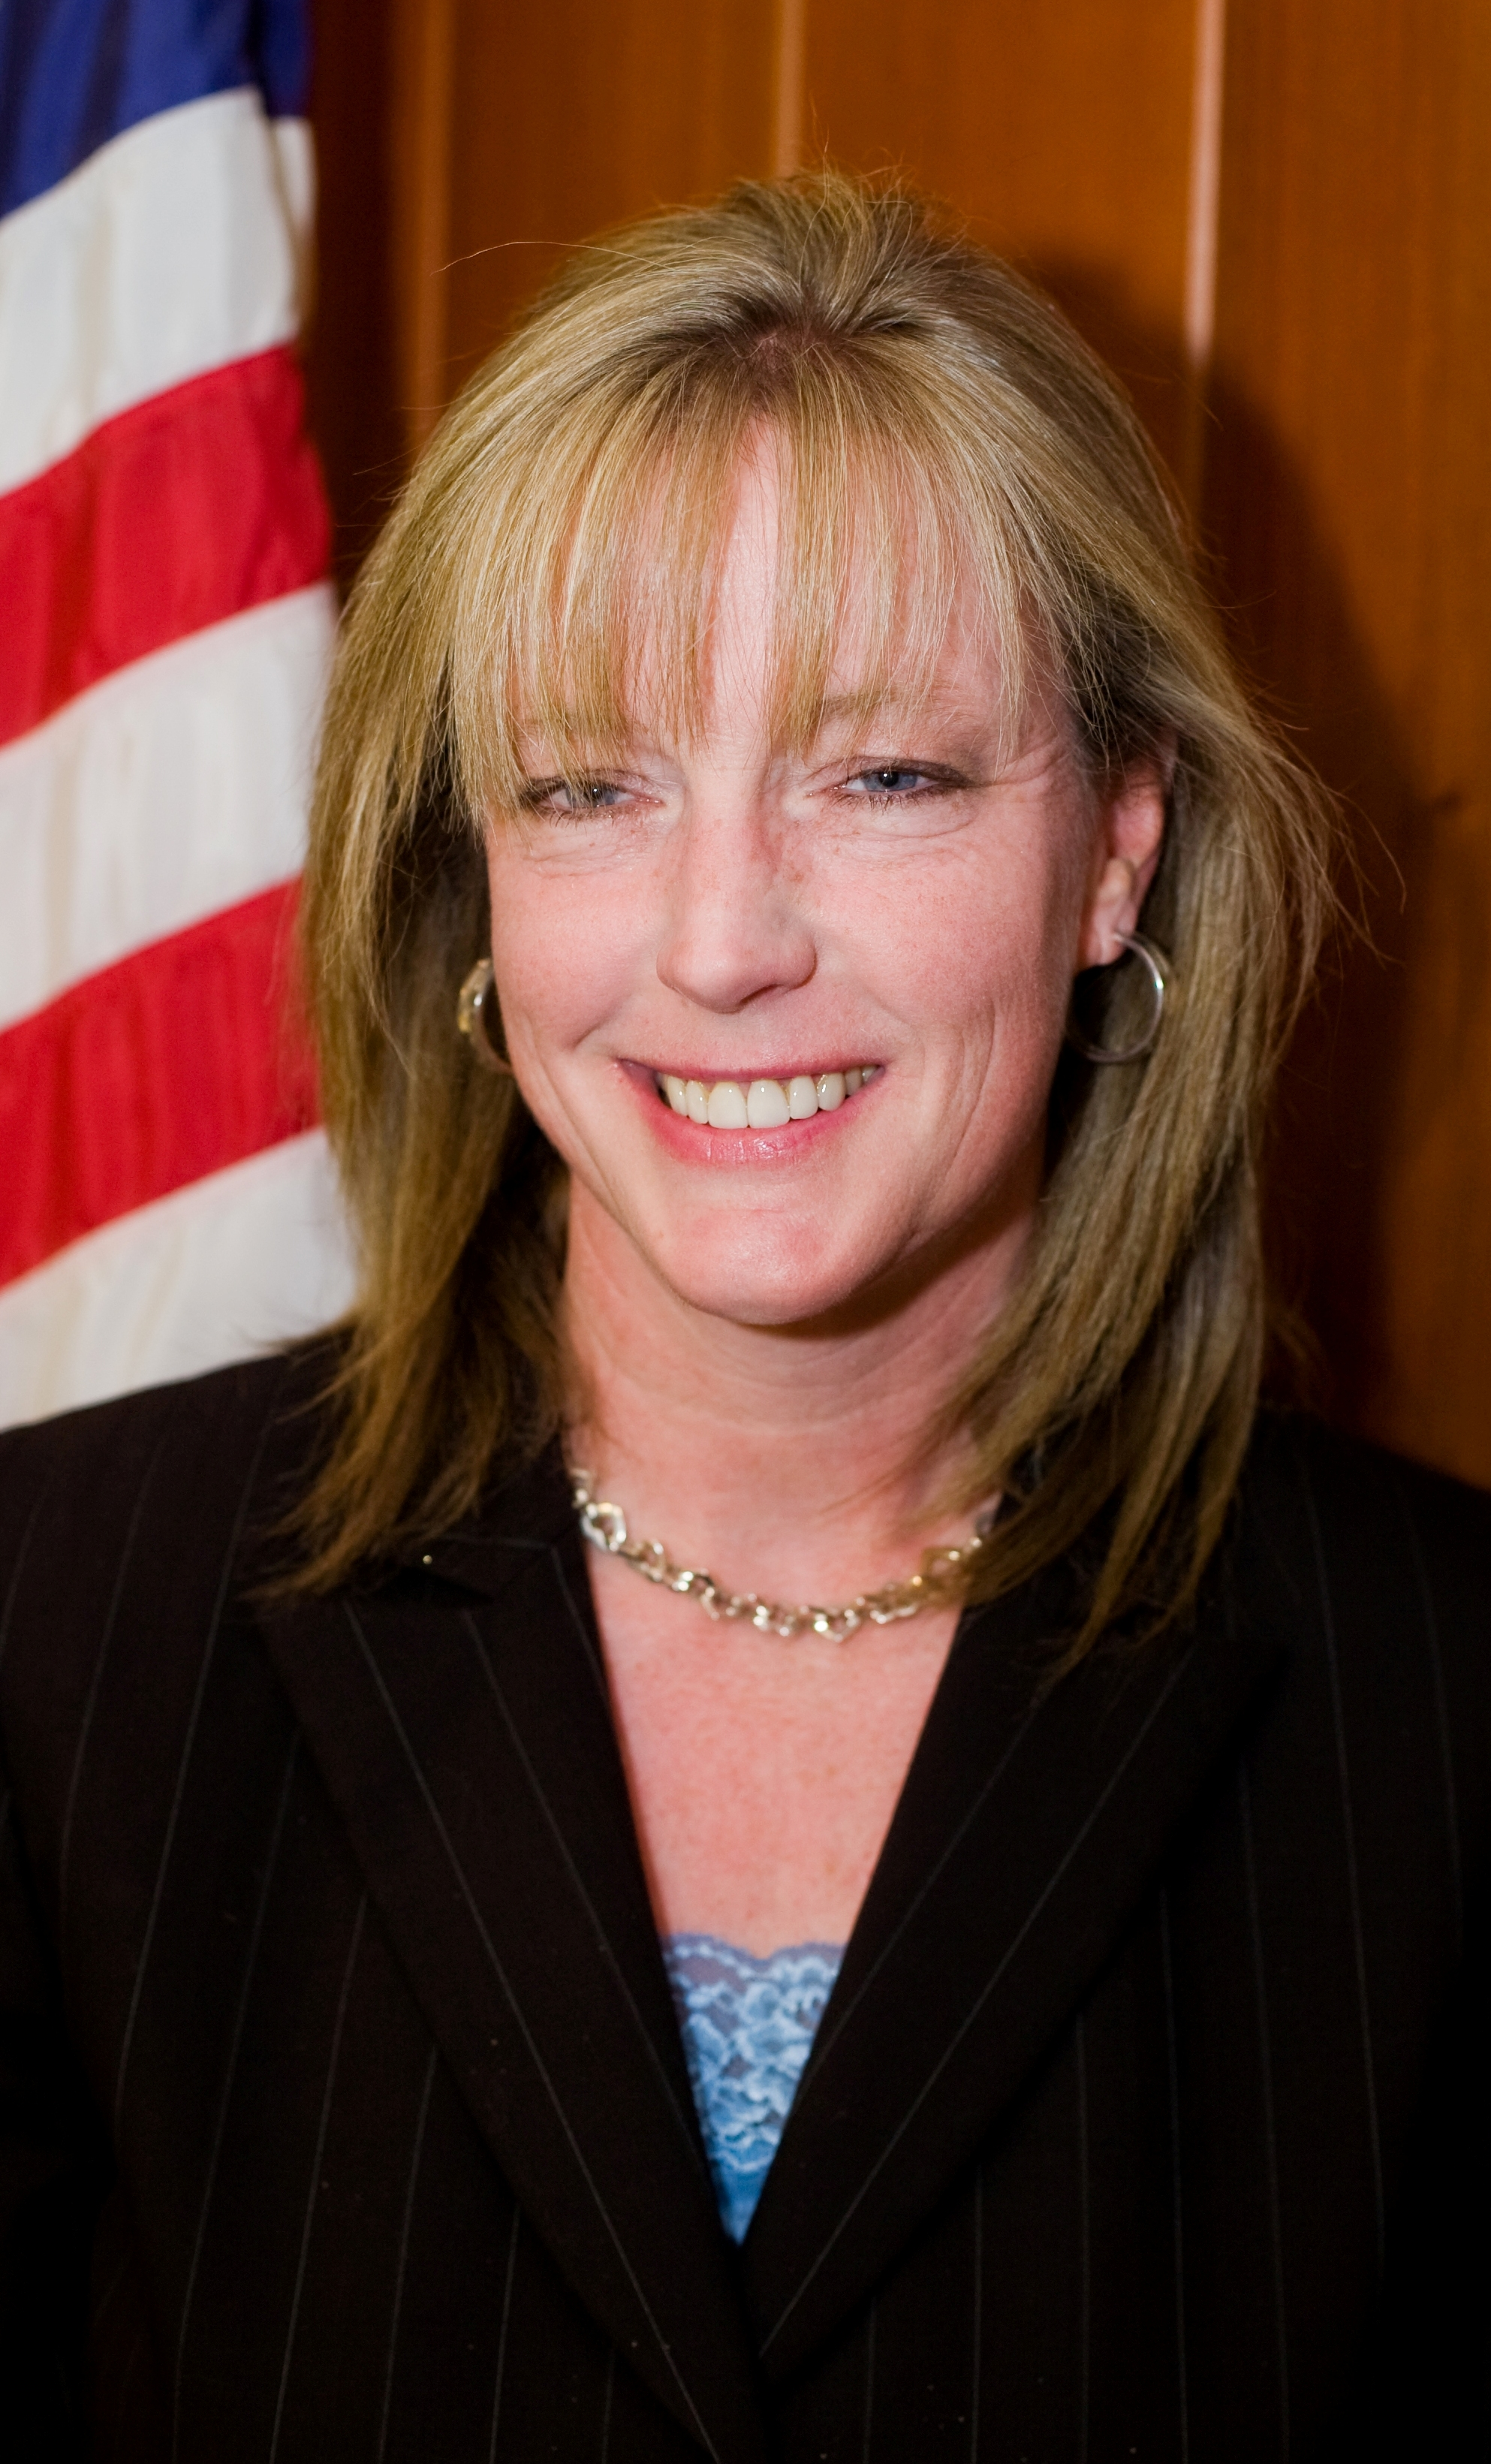 4th District Supervisor Virginia Bass